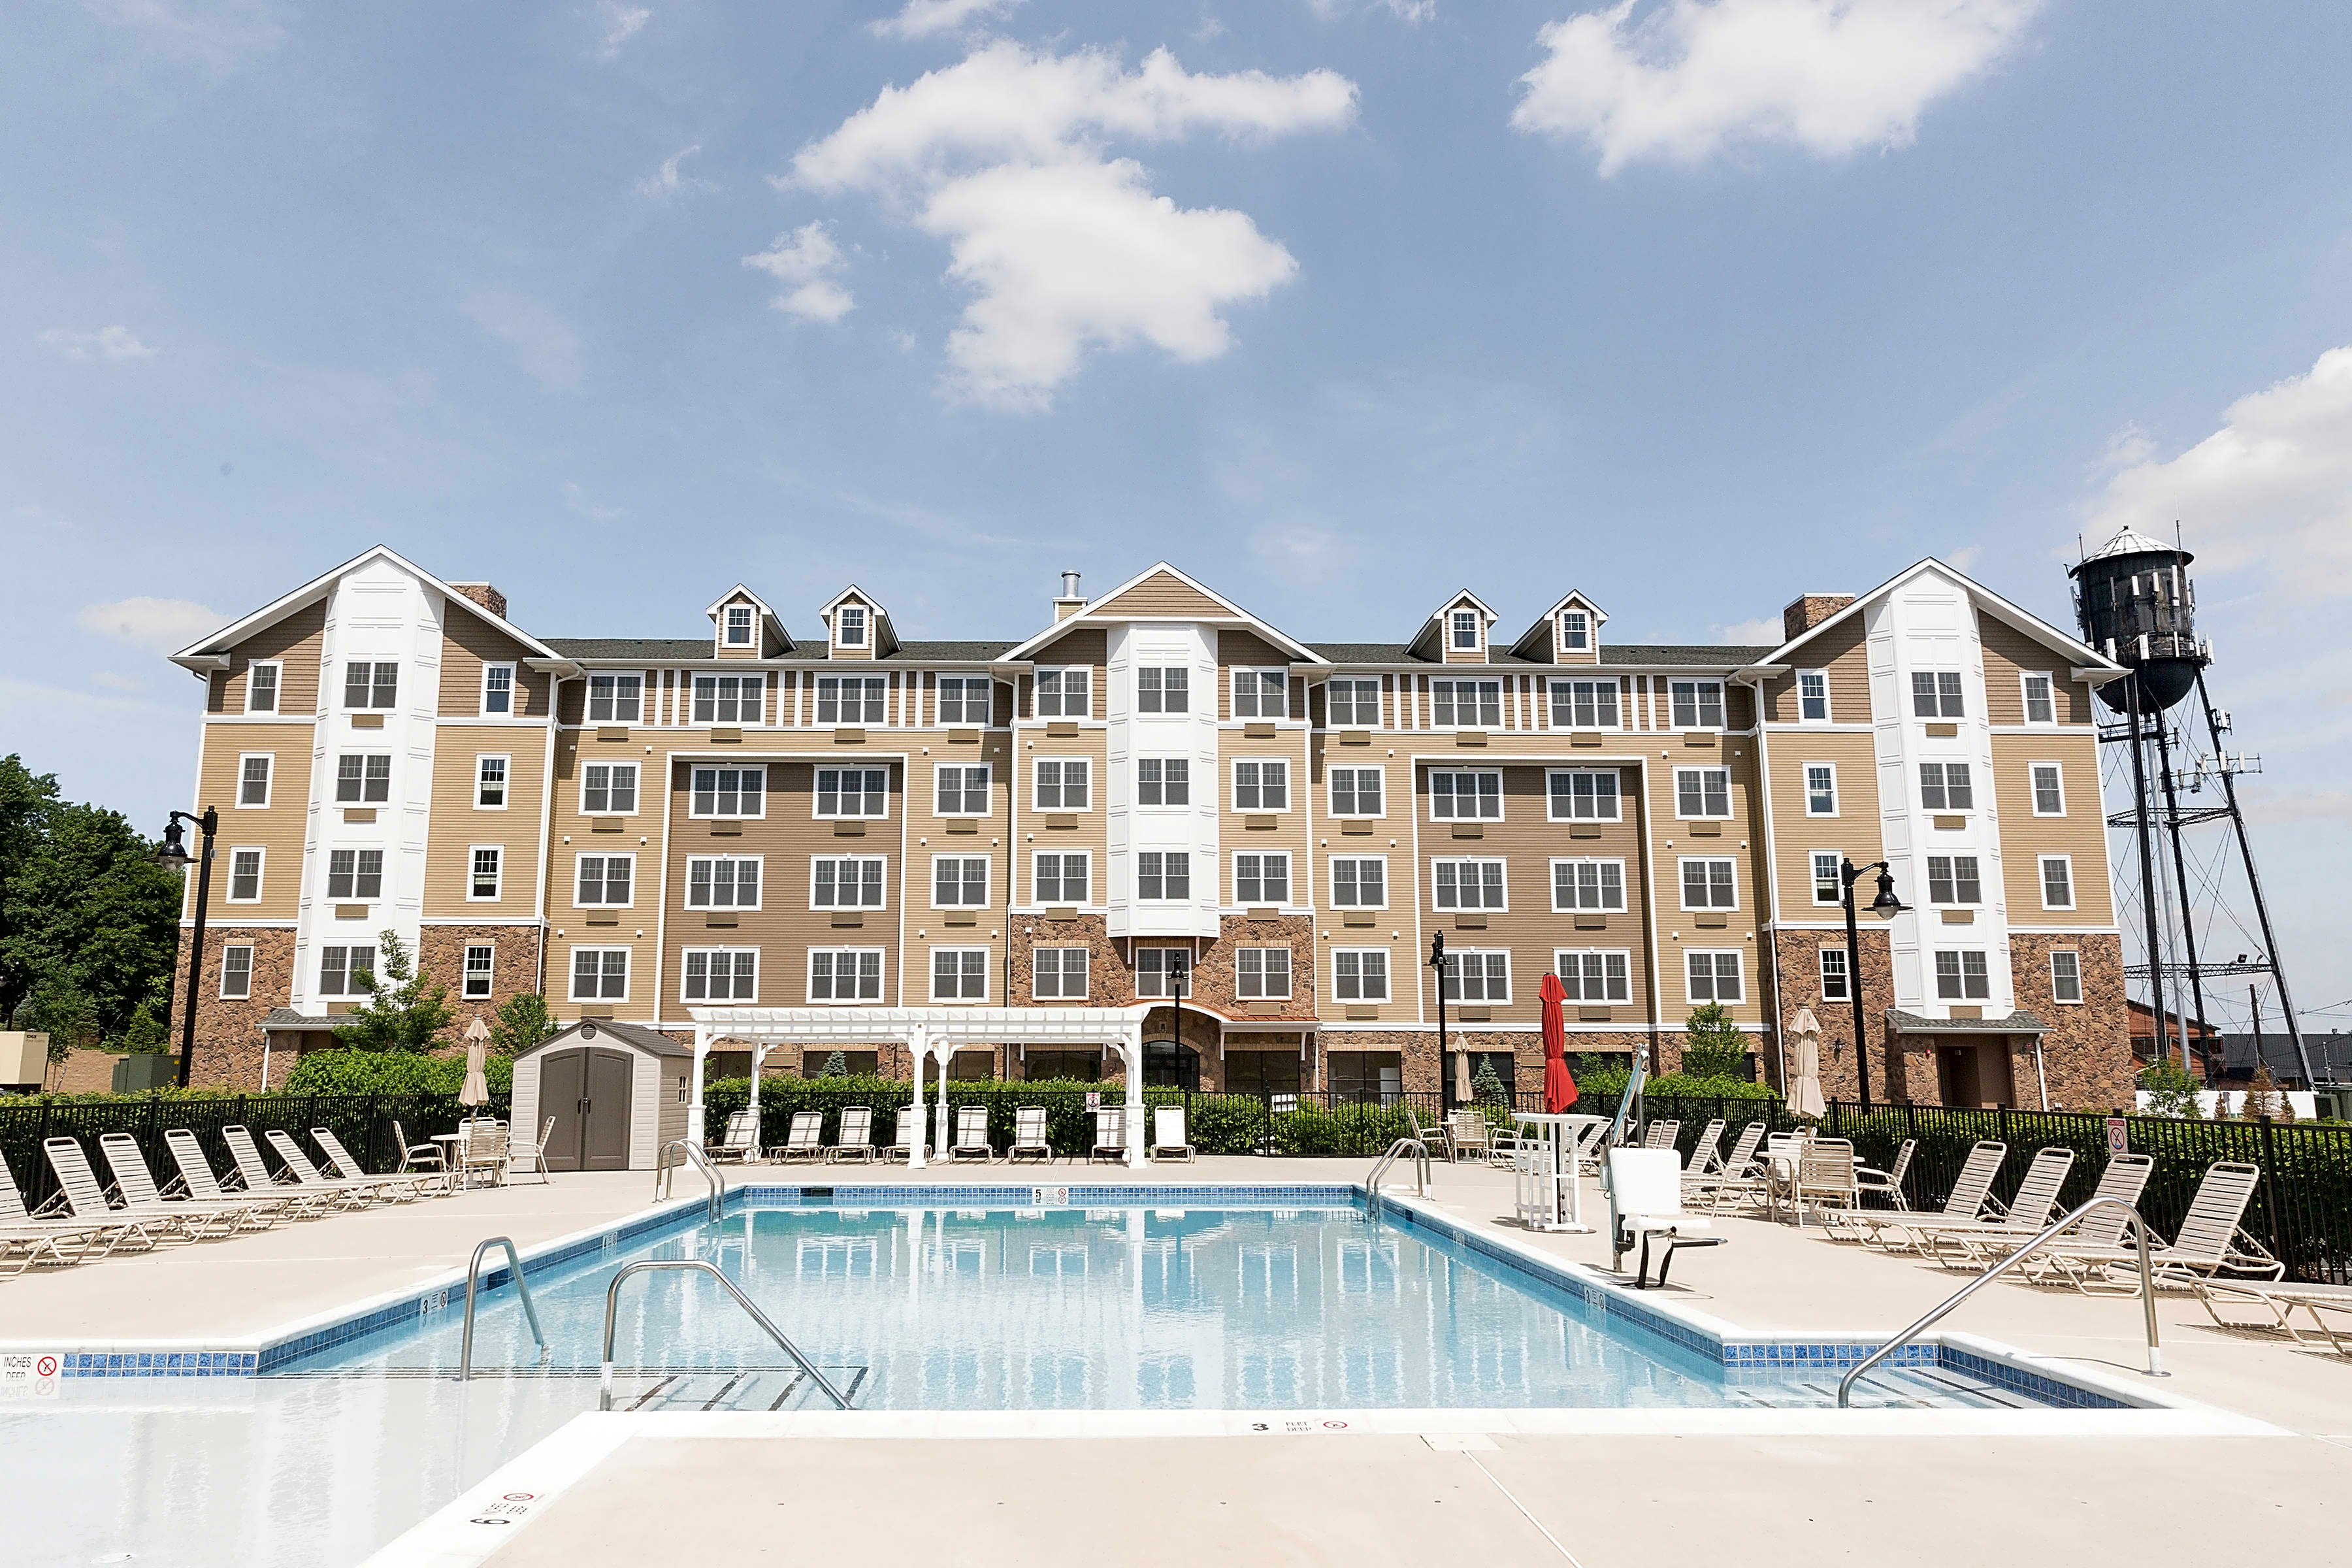 Apartments Near Felician River Edge at Garfield for Felician College Students in Lodi, NJ